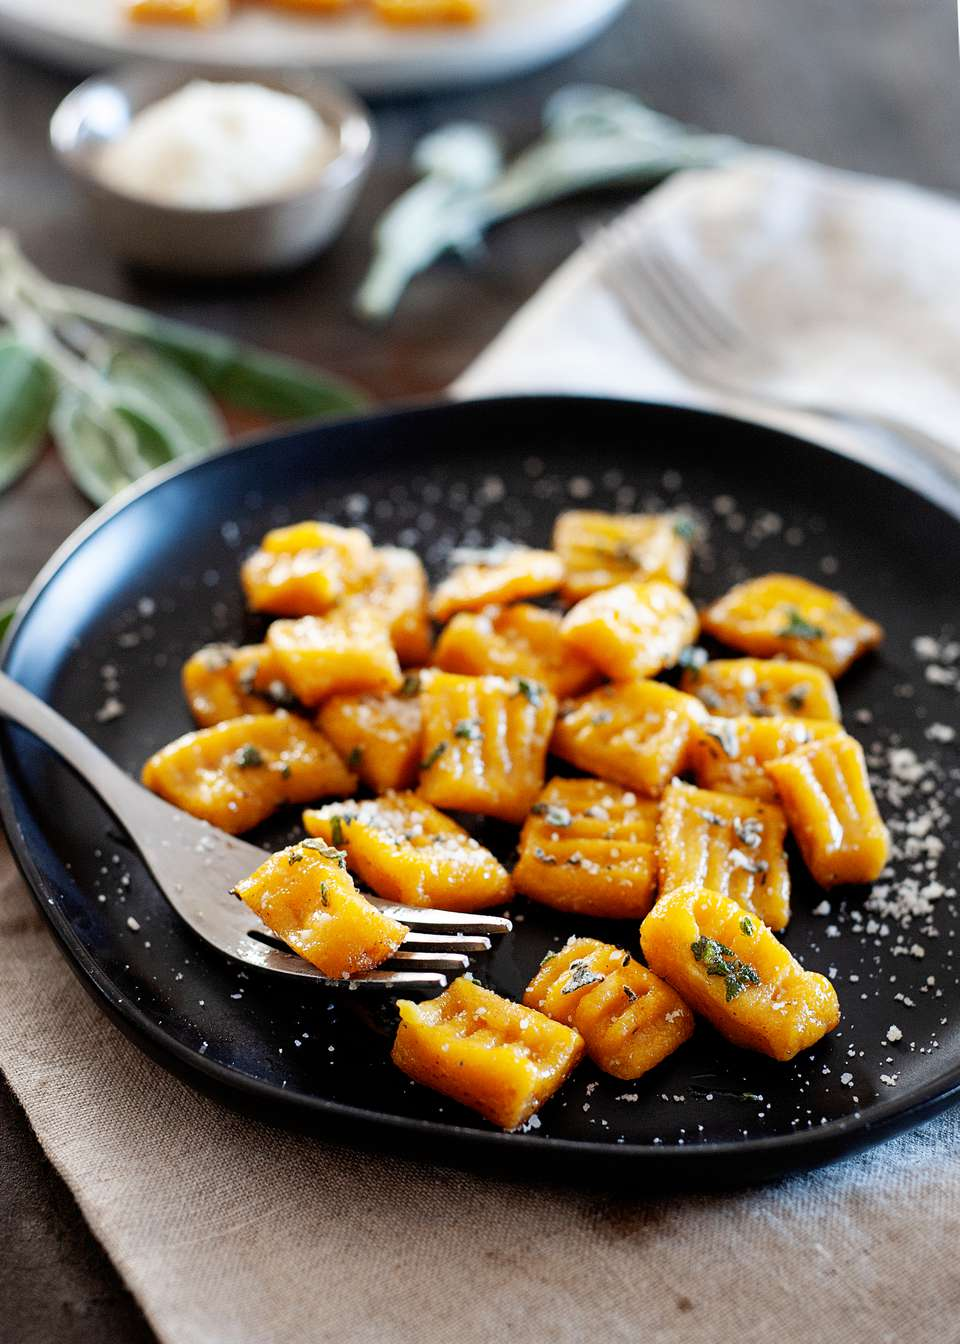 A plate of pumpkin gnocchi with a fork lifting some off the plate.